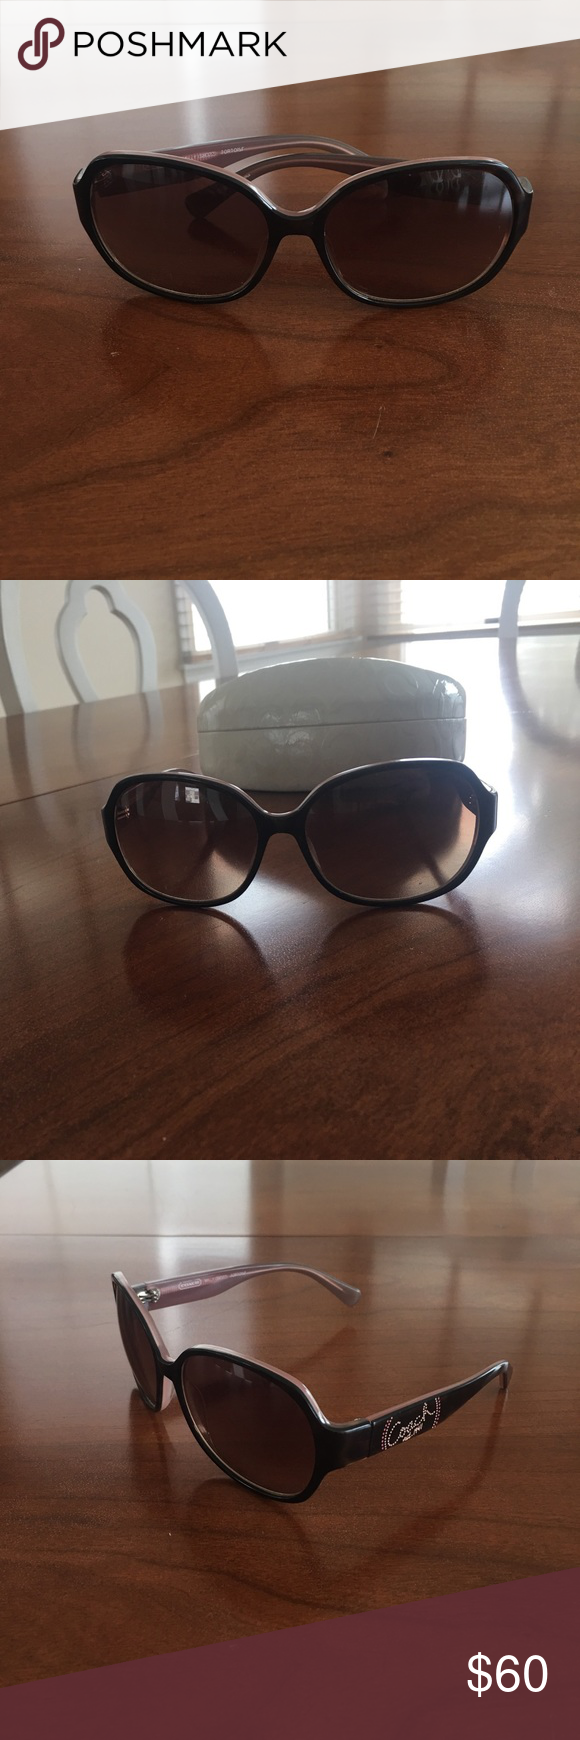 Coach Sunglasses (Milly) Coach Sunglasses // Style: Milly // In great condition. Worn for about 1 season and taken very great care of. No scratches or extreme signs of wear. // Comes with the original case. // 100% Authentic. Purchased from the Coach store. // Feel free to make an offer! Coach Accessories Sunglasses